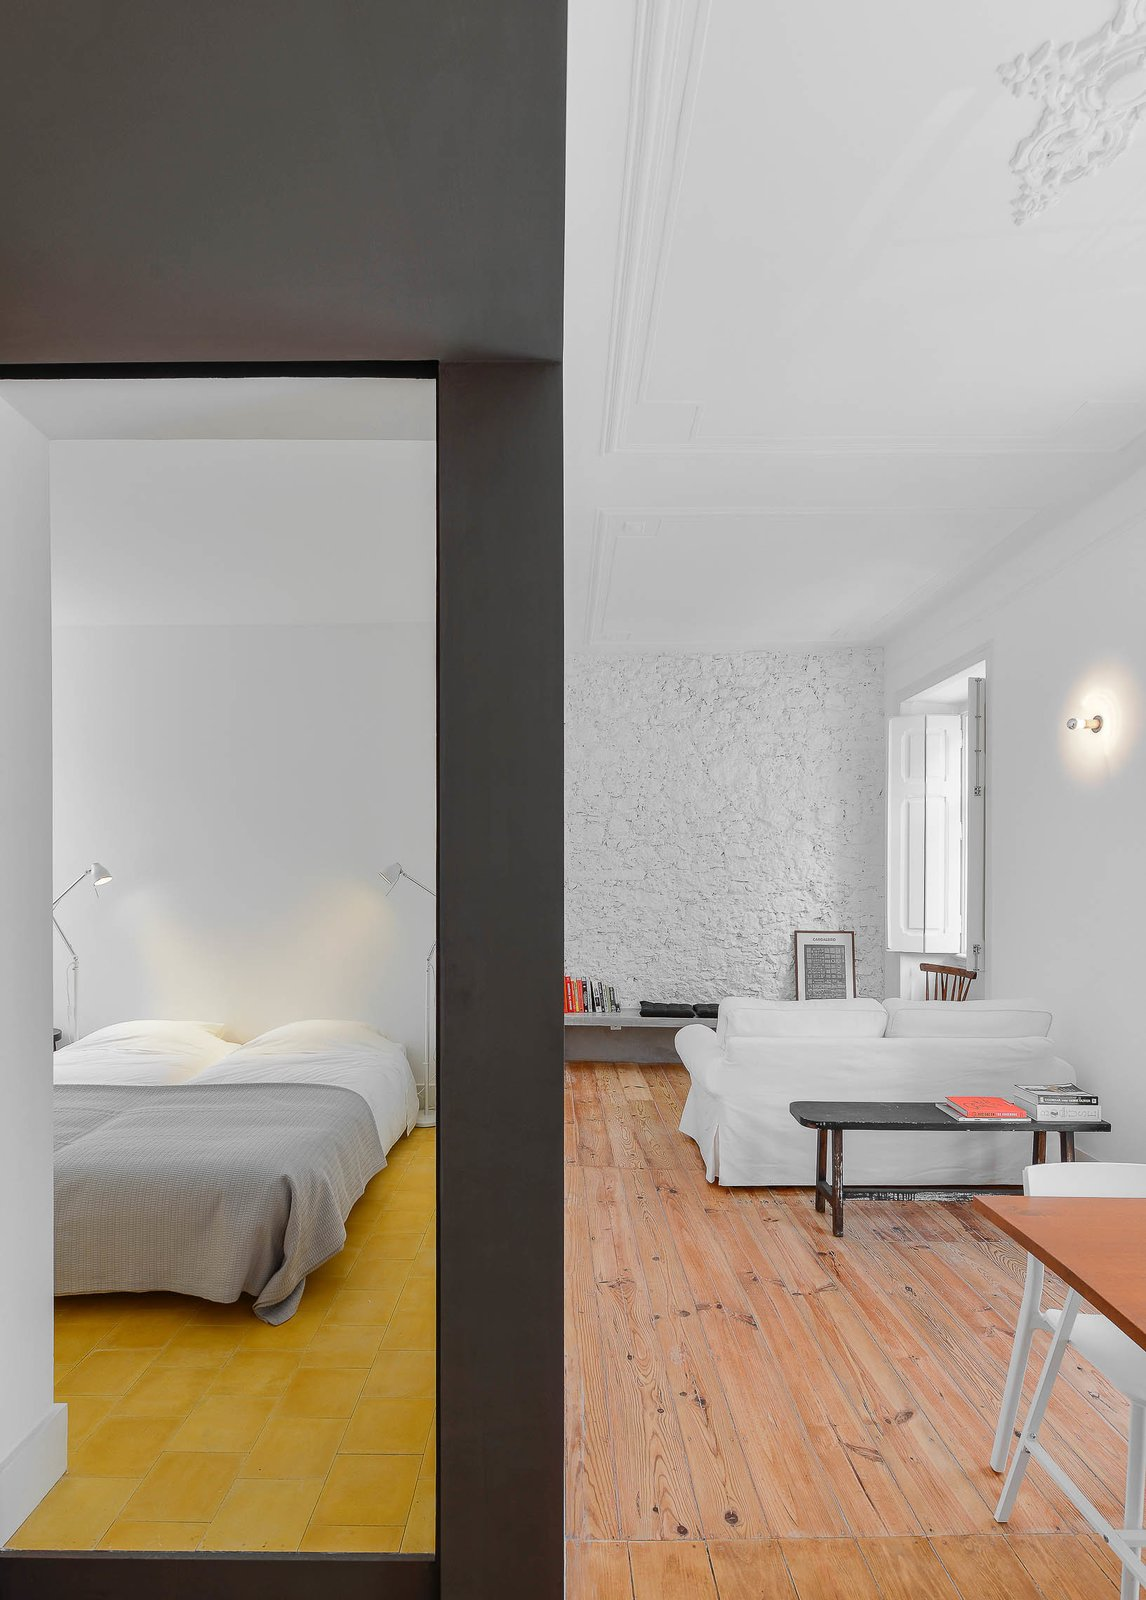 When the sliding doors are left open, the rooms enter into a playful dialogue with each other, with the dark exterior walls framing the more colorful bedroom within. 7 Minimalist Apartments Around The World - Photo 6 of 7